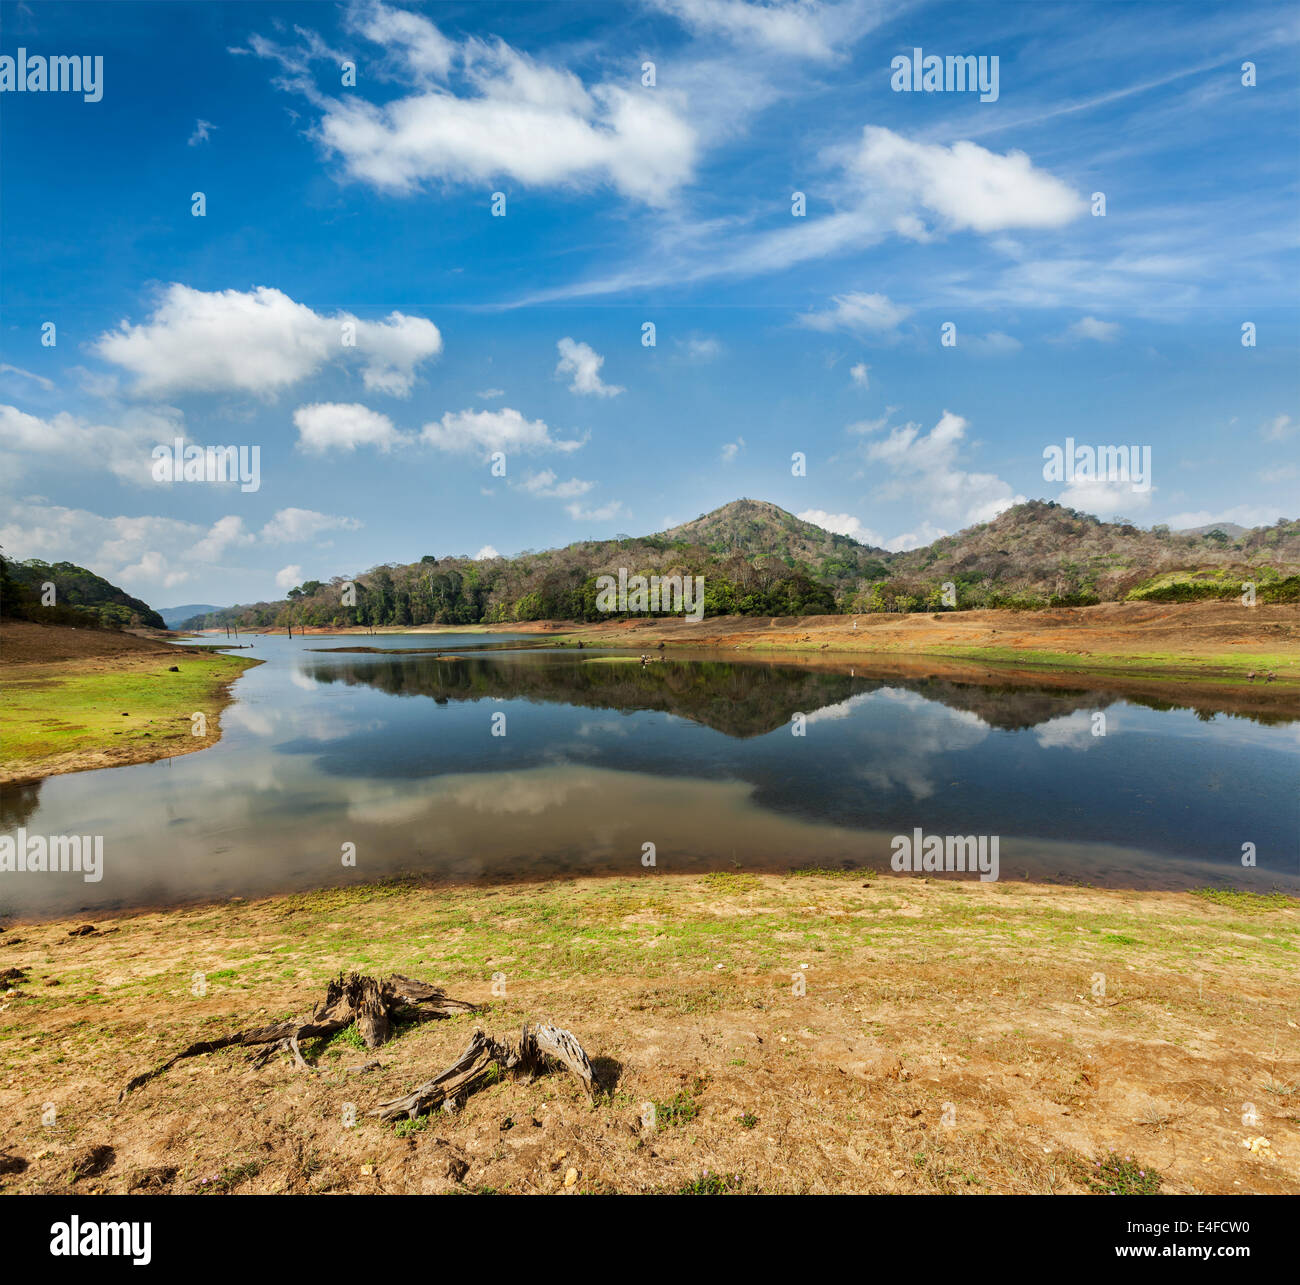 Periyar lake in Periyar wildlife sanctuary, Kumily, Kerala, India - Stock Image